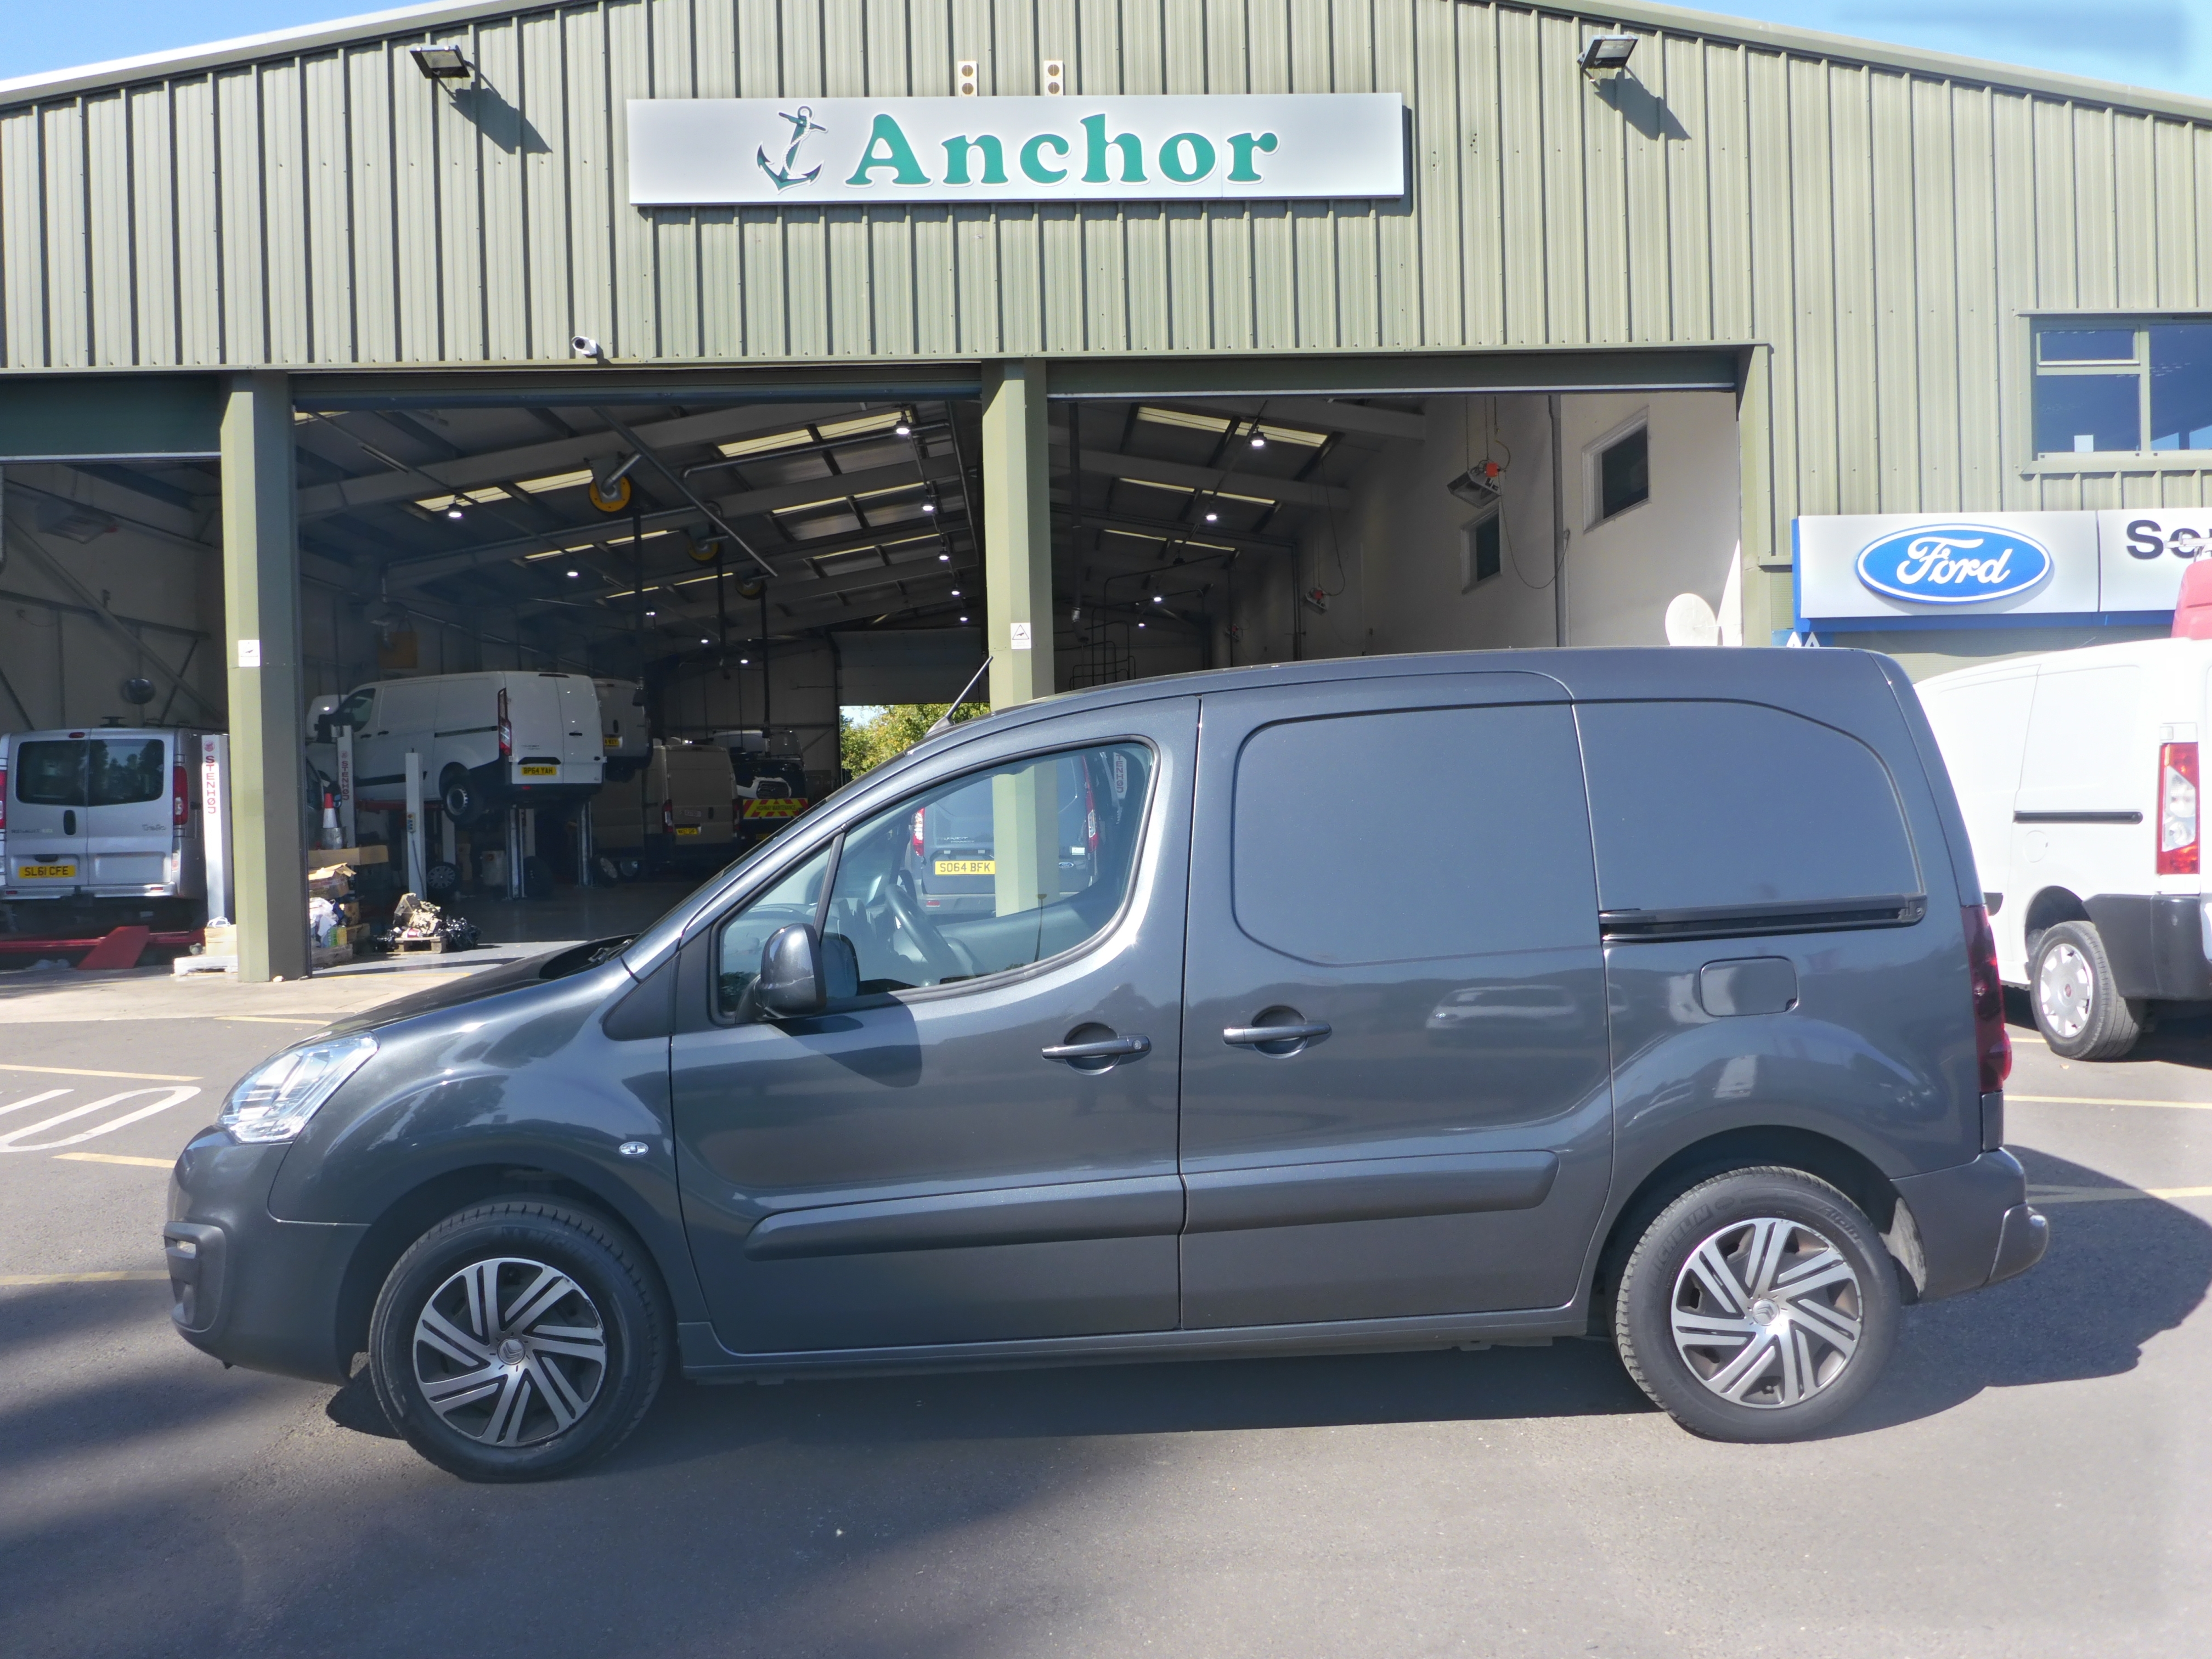 Citroen Berlingo CA66 AEO